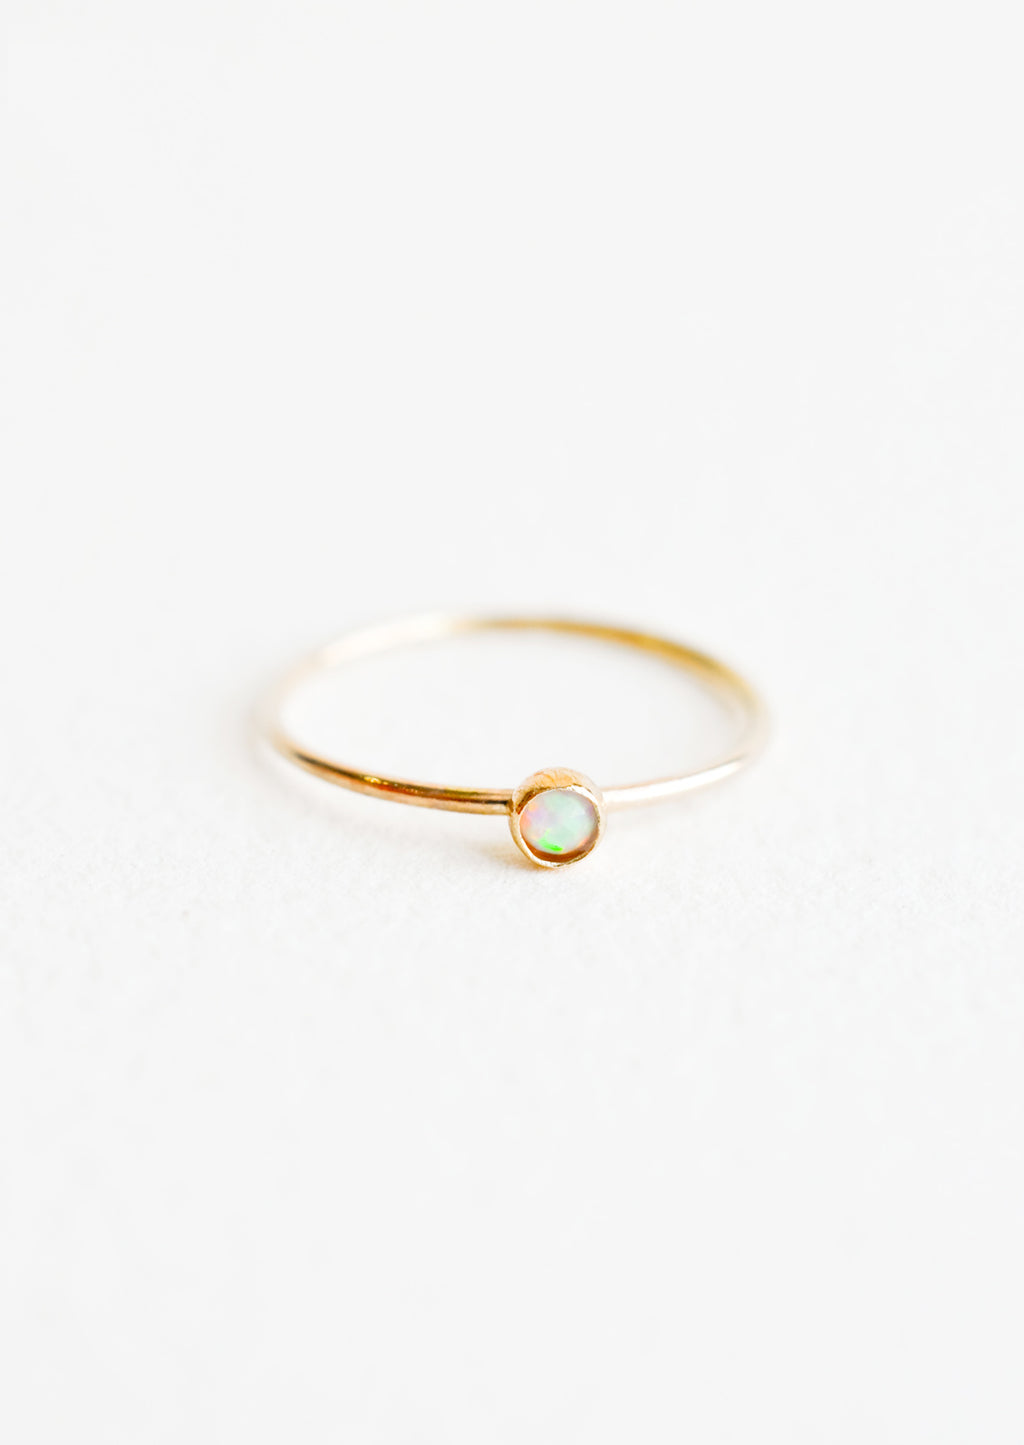 Opal / Size 5: Yellow gold ring with slim band and small white opal stone.